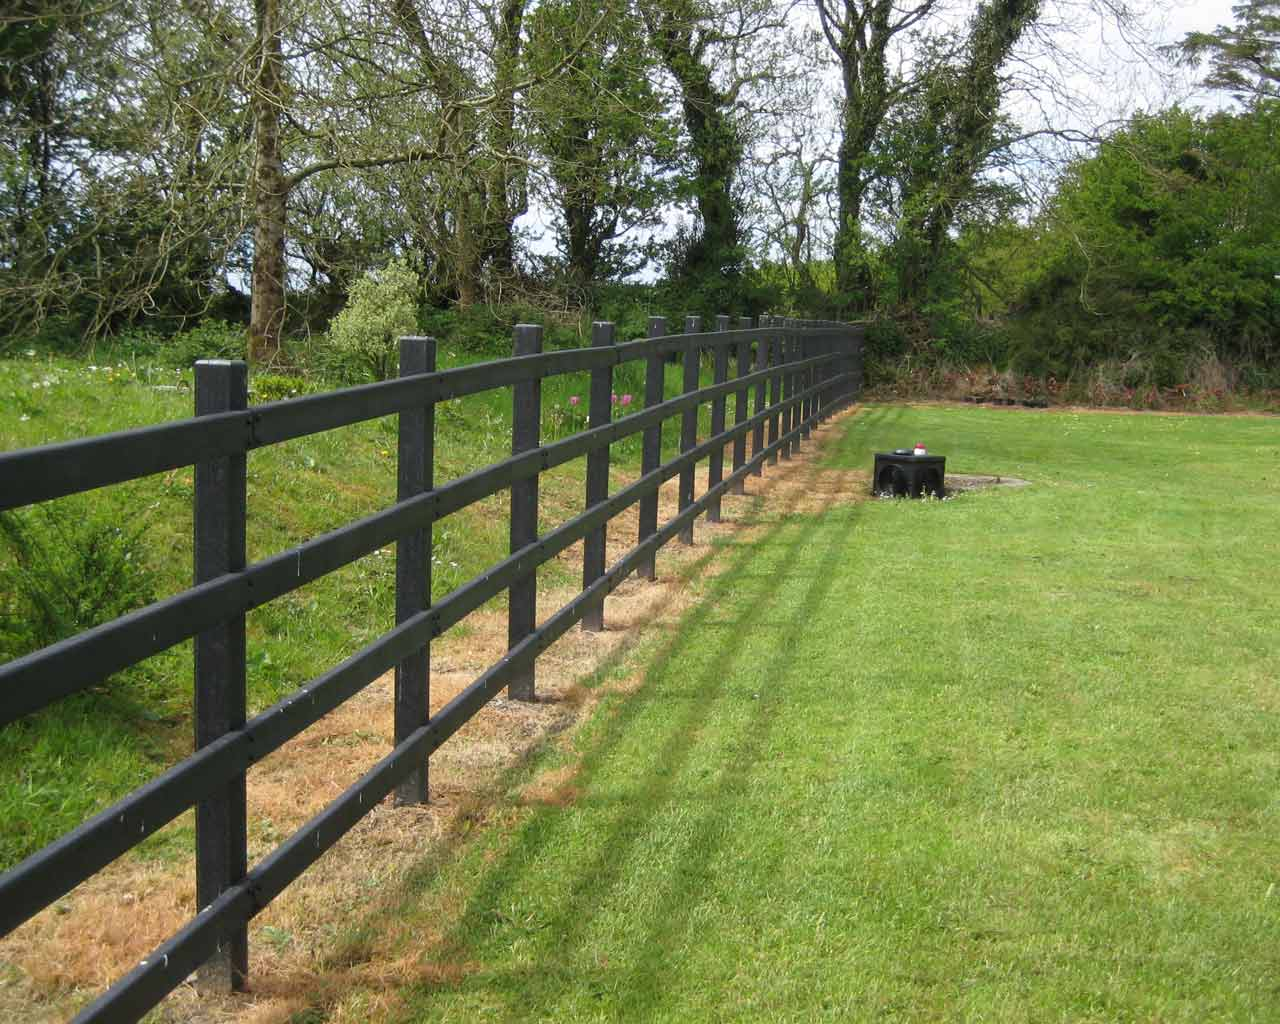 4 Rail Fencing Murray S Recycled Plastic